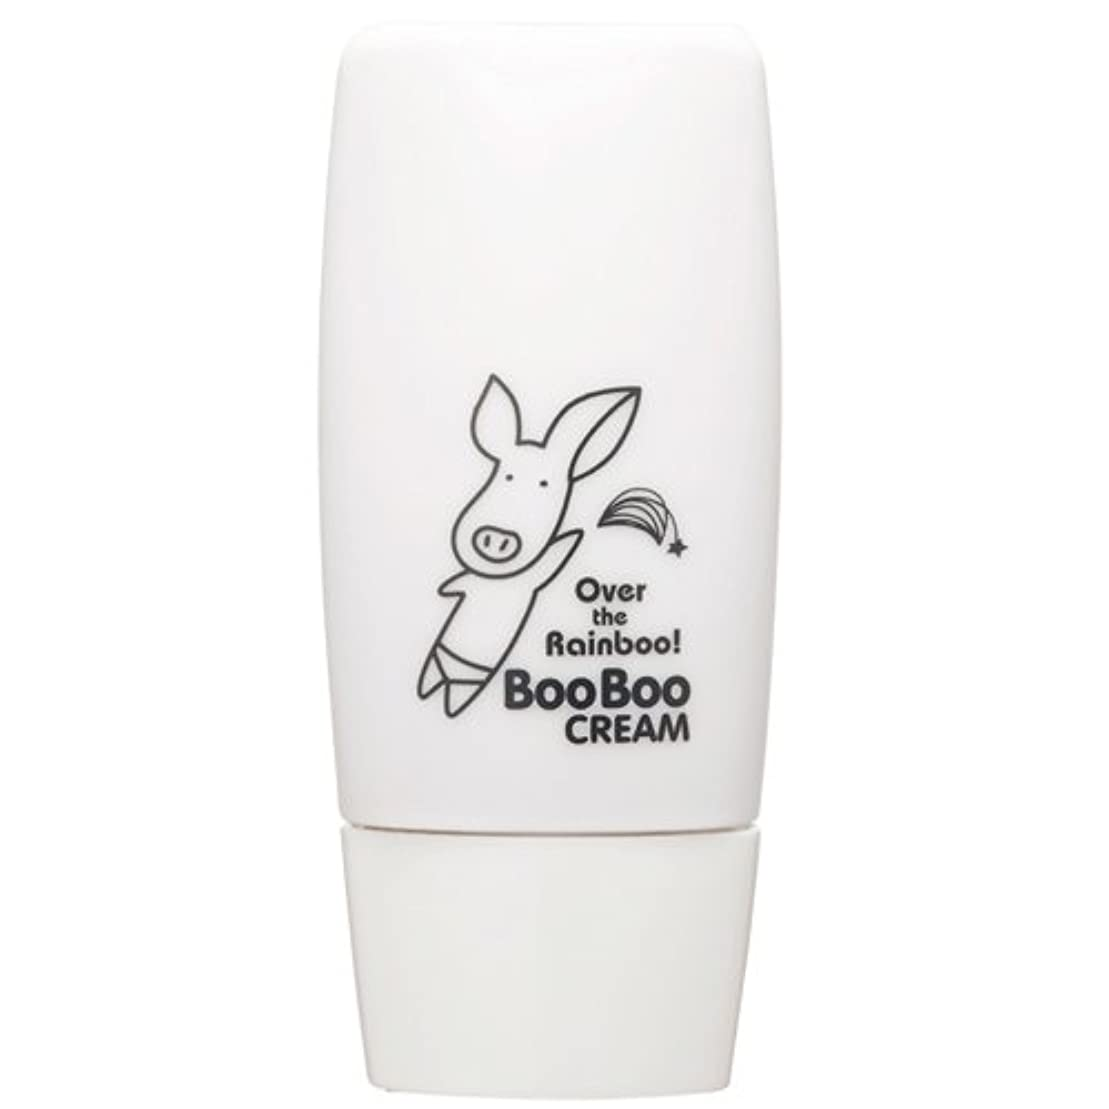 タクシー朝ごはん処方Over the Rainboo! Boo Boo CREAM